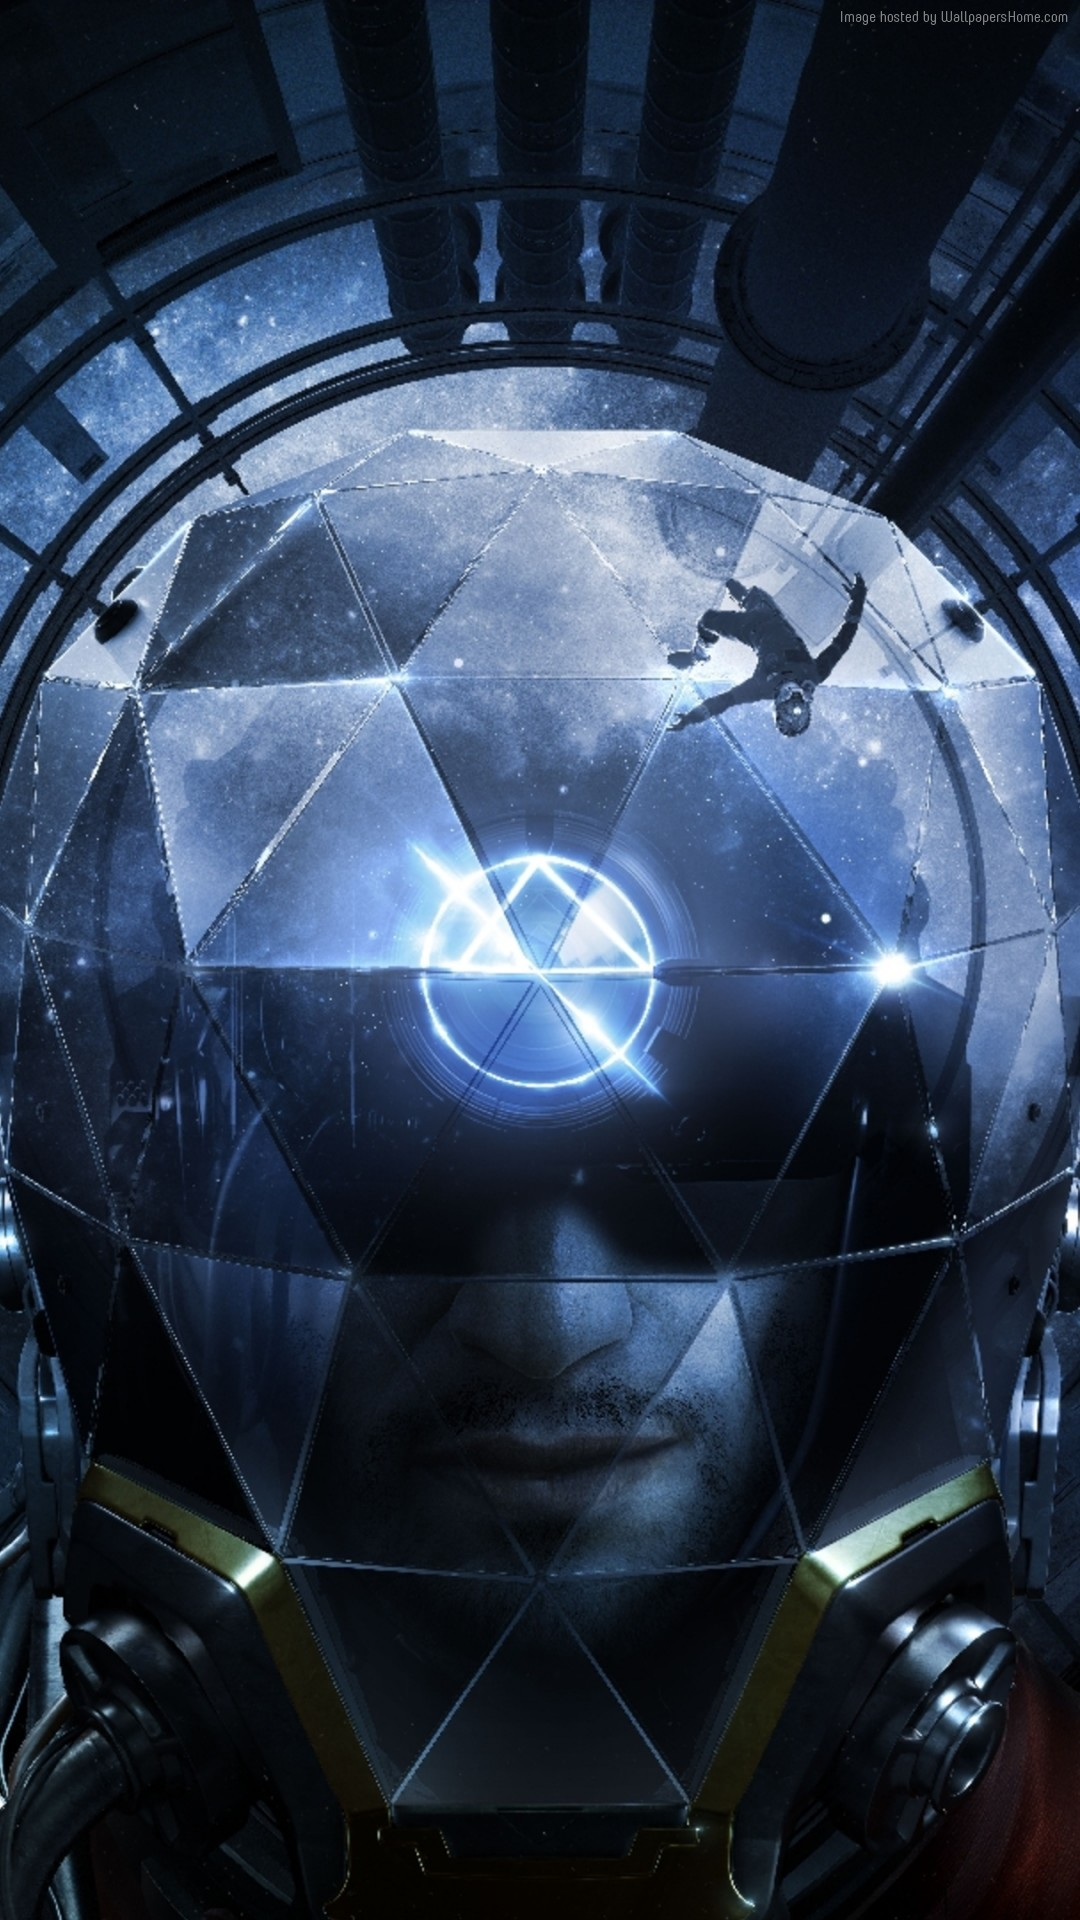 prey wallpaper shooter best games playstation 4 xbox one windows best  iphone 7 wallpapers